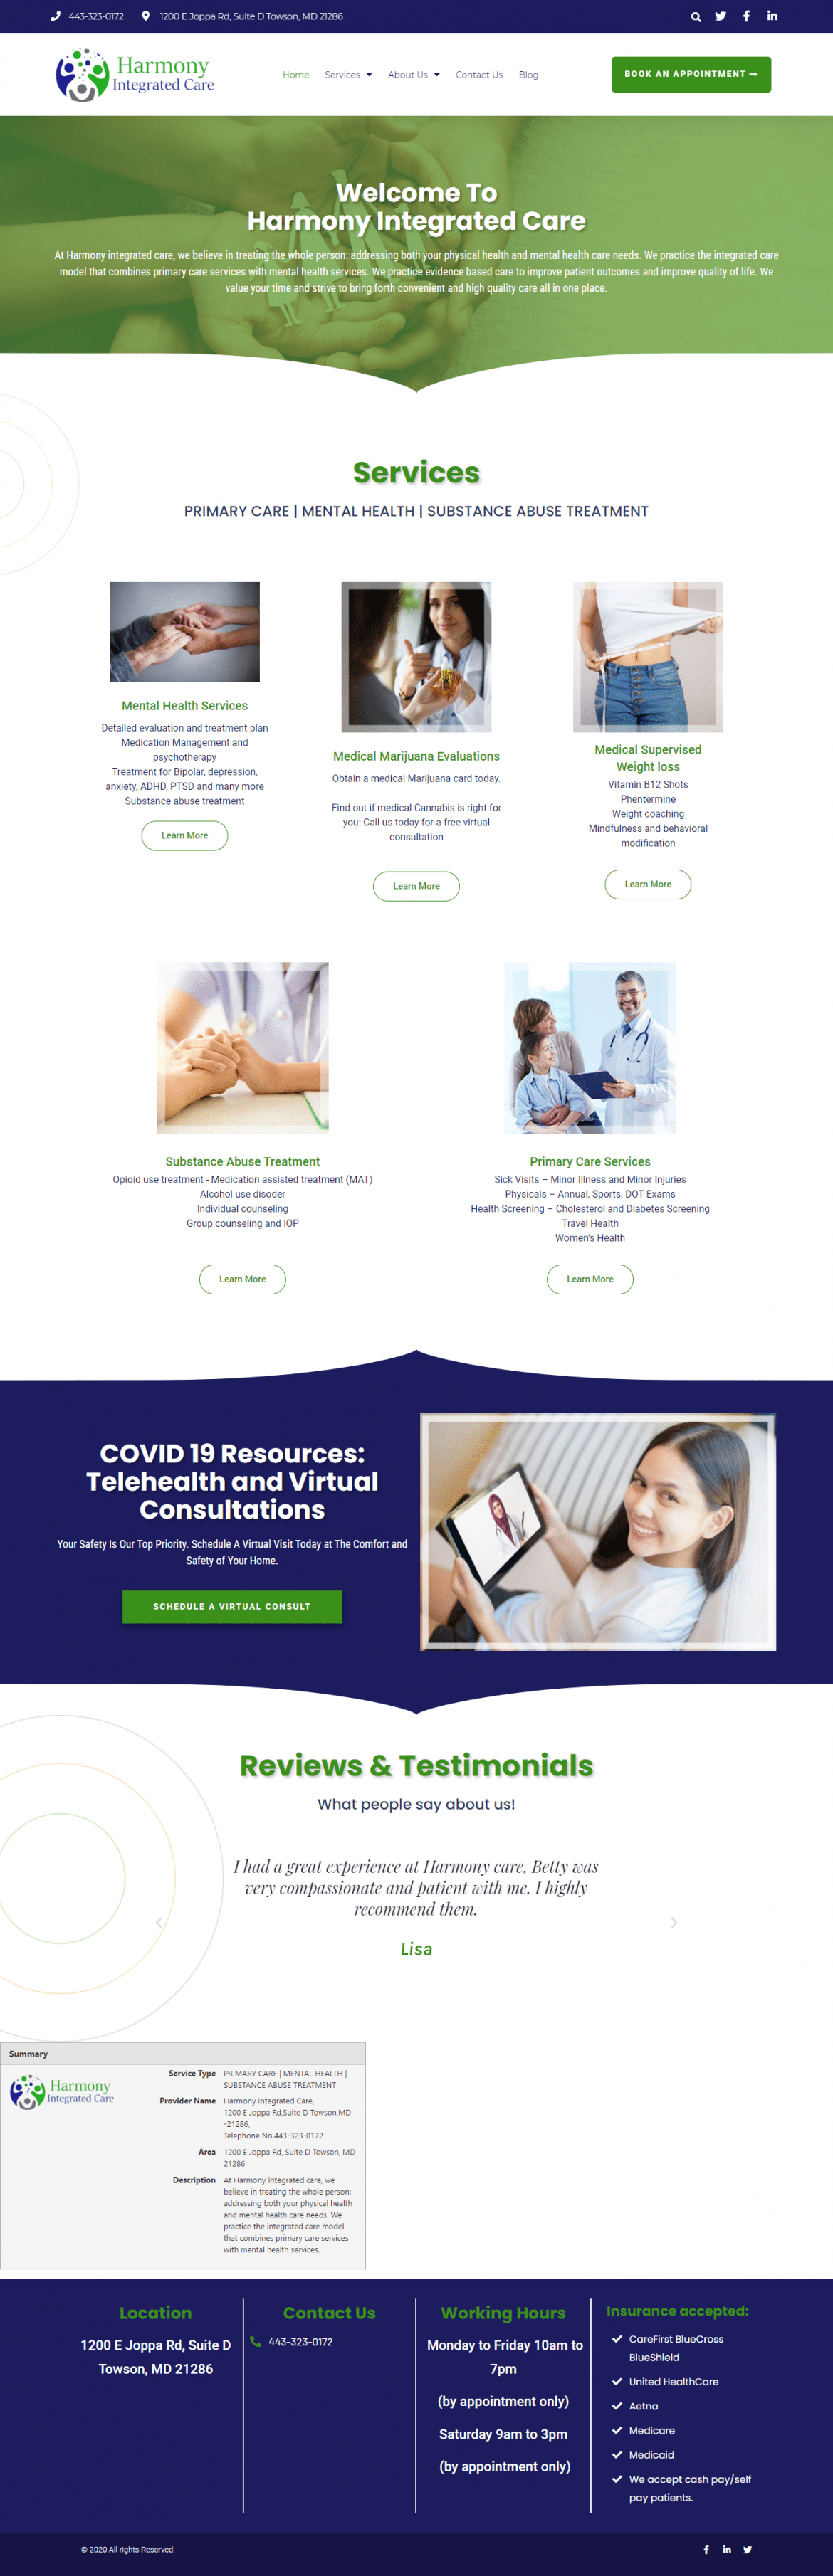 Harmony Integrated Care